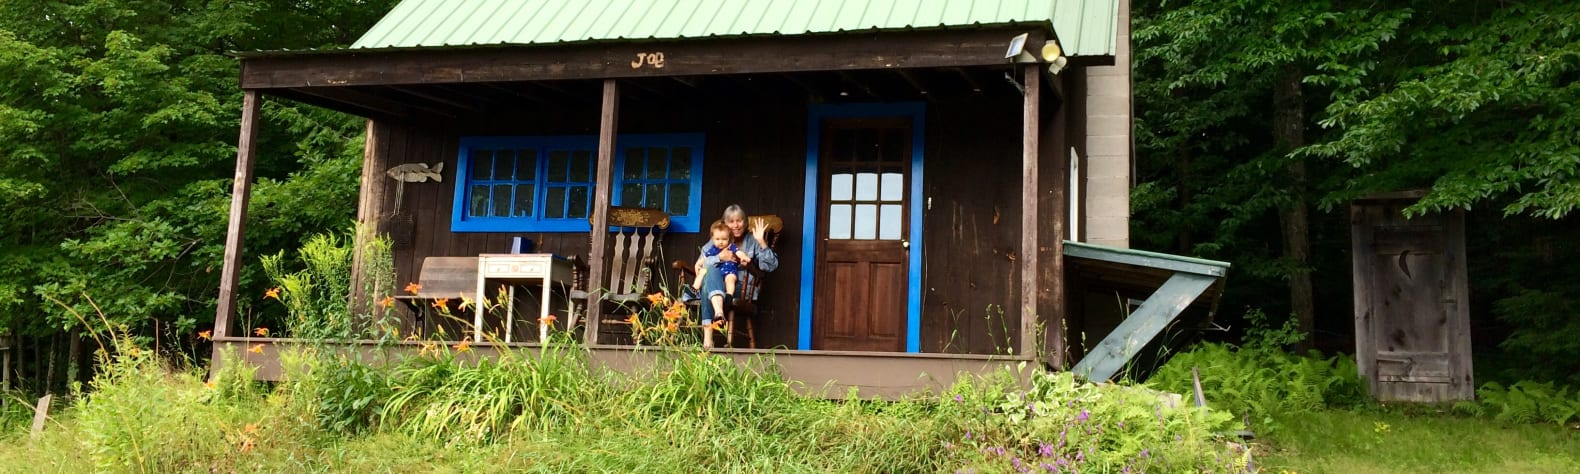 Retreat Cabin at East View Farm